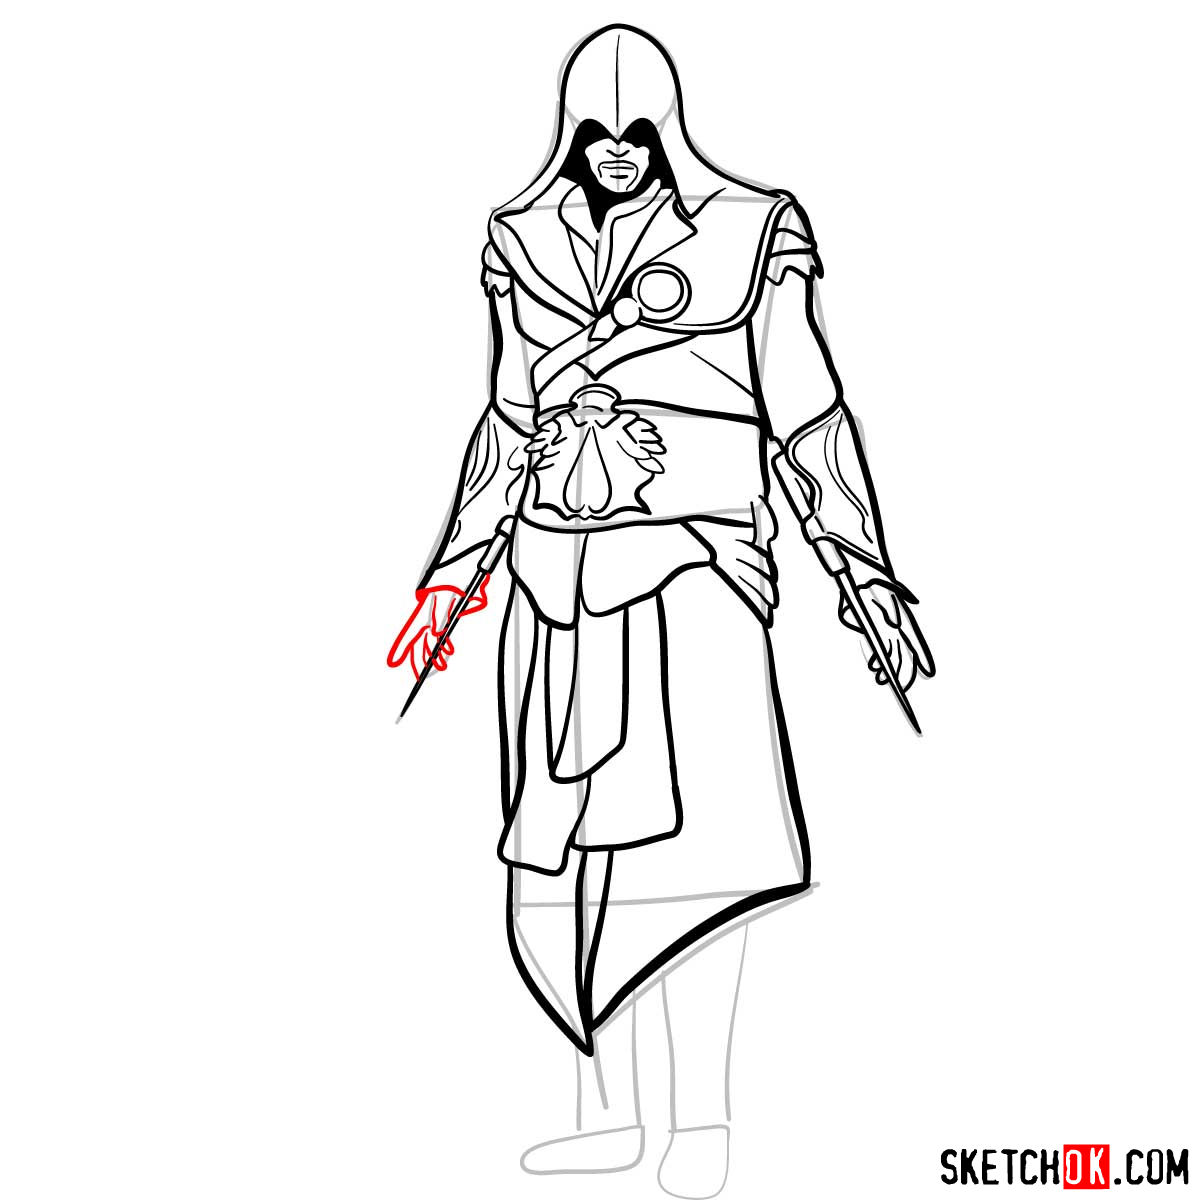 How to draw an Assassin from Assassin's Creed game - step 15